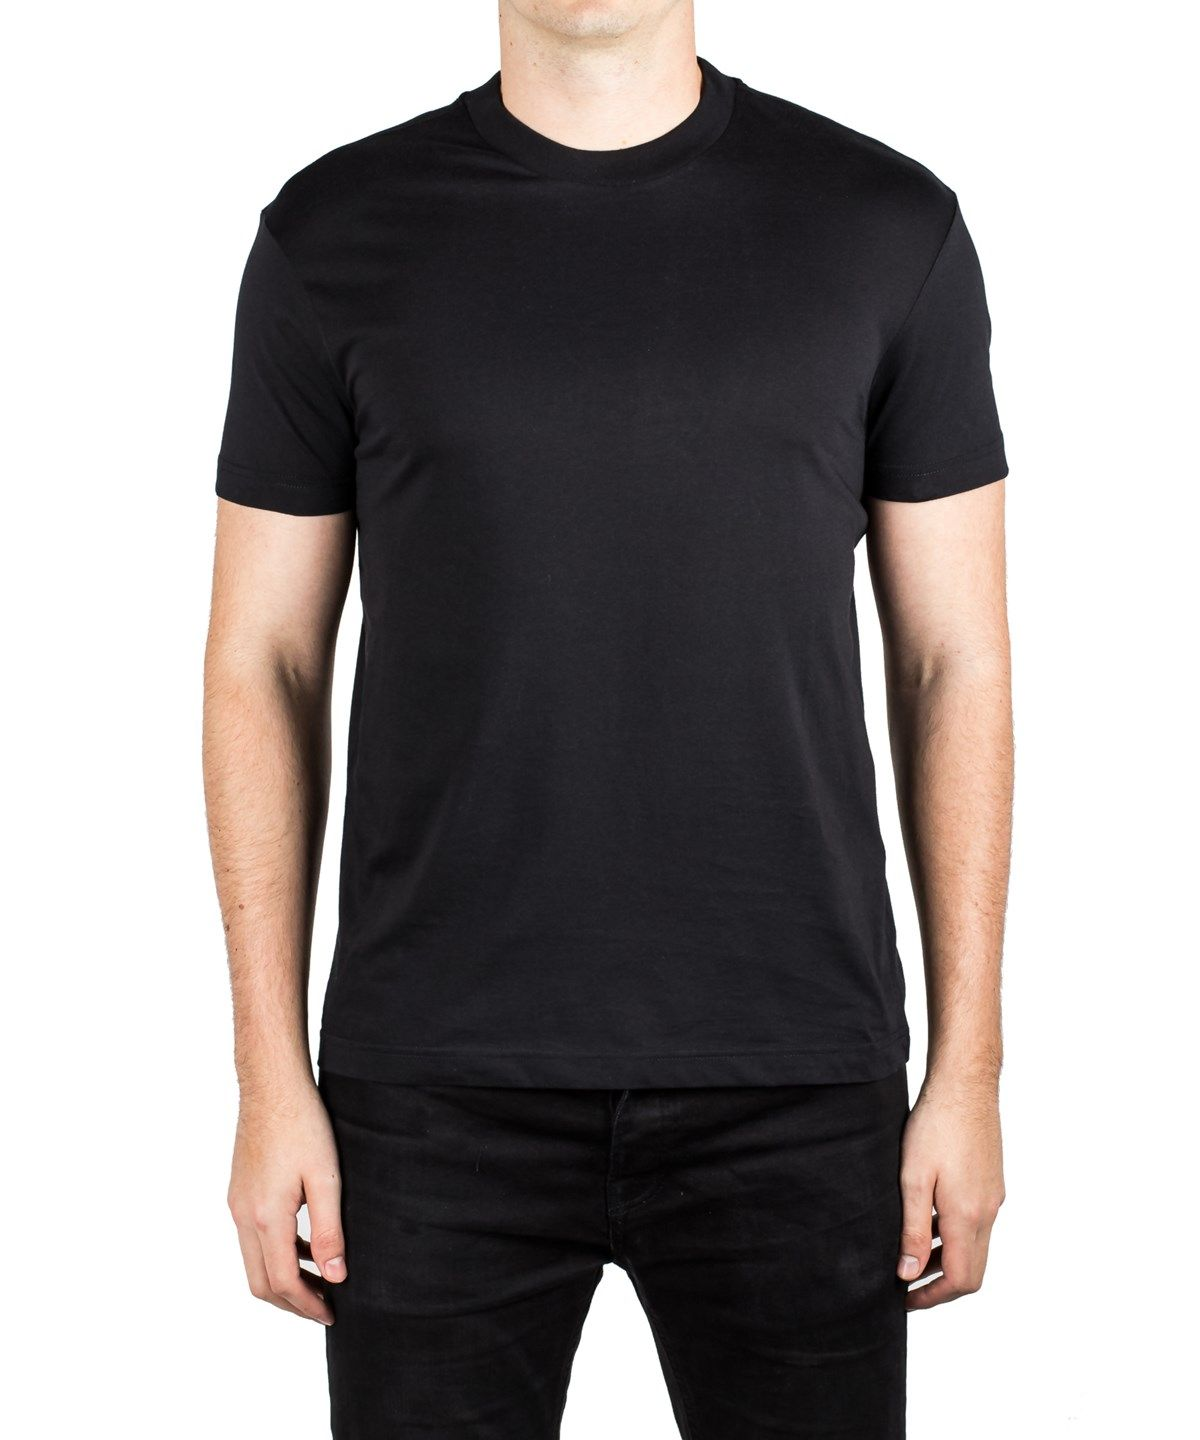 17432f22 PRADA Prada Men'S Jersey Cotton Crew Neck Patch T-Shirt Black ...